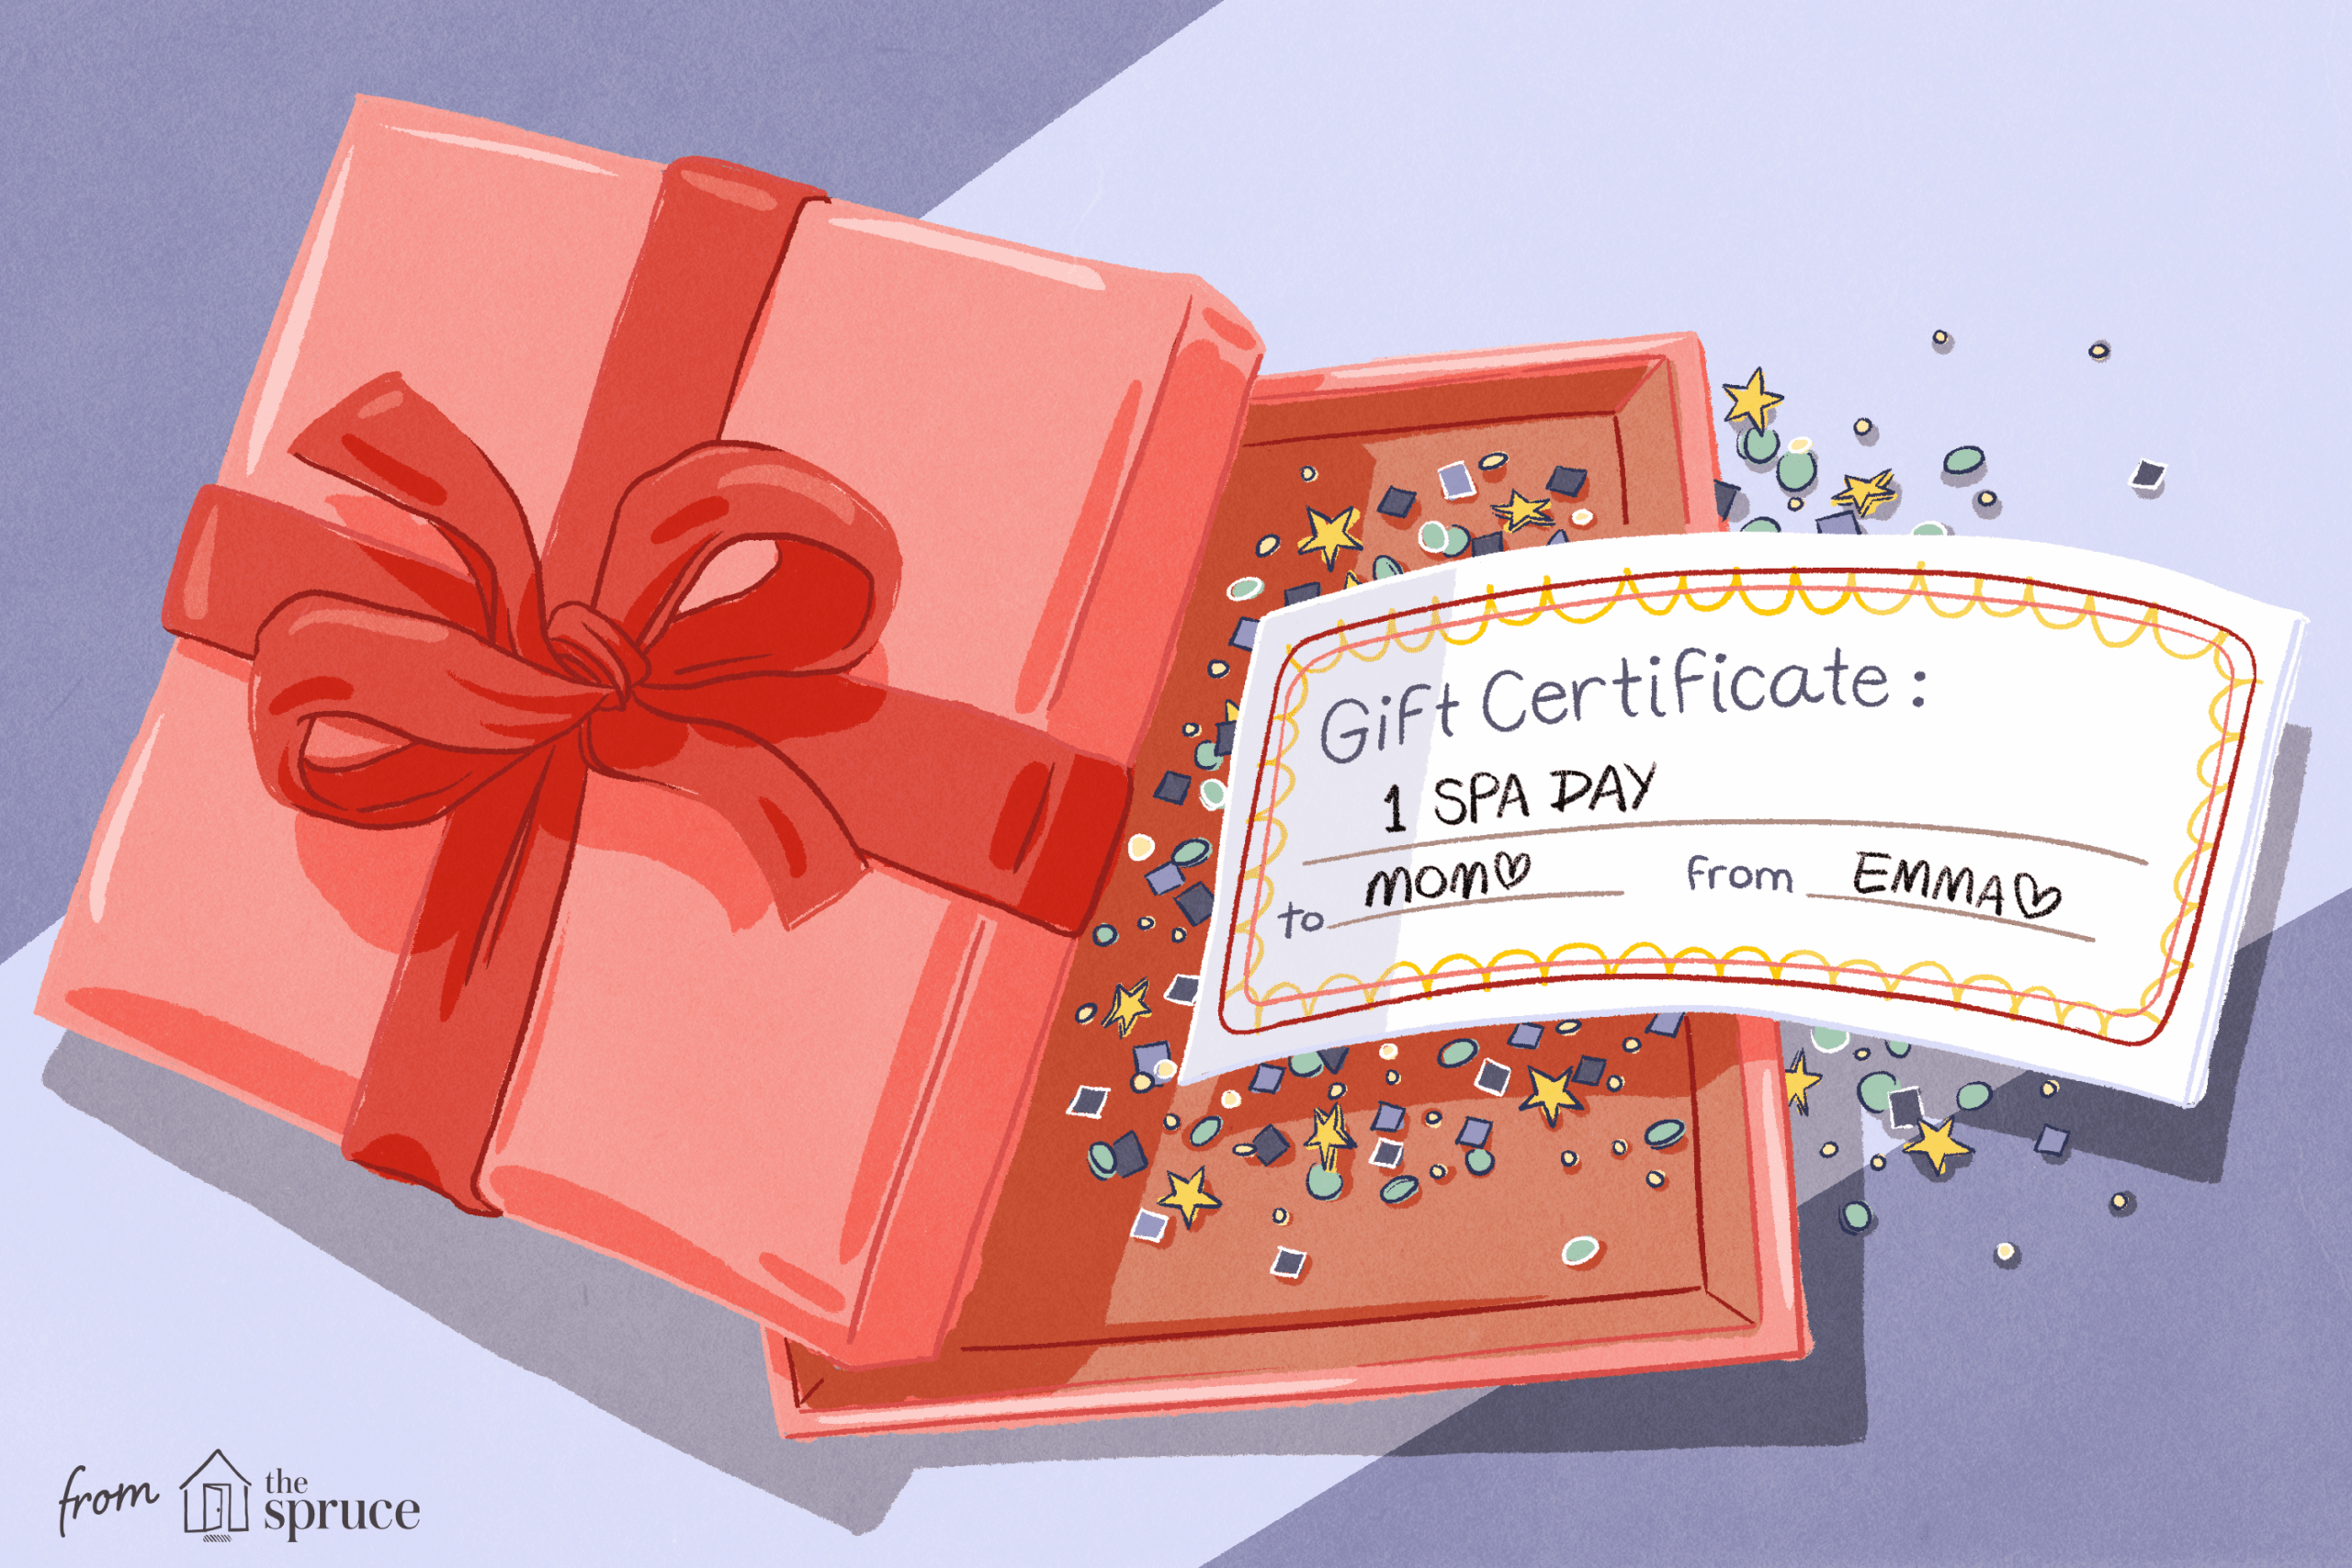 Free Gift Certificate Templates You Can Customize For Spa Day Gift Certificate Template